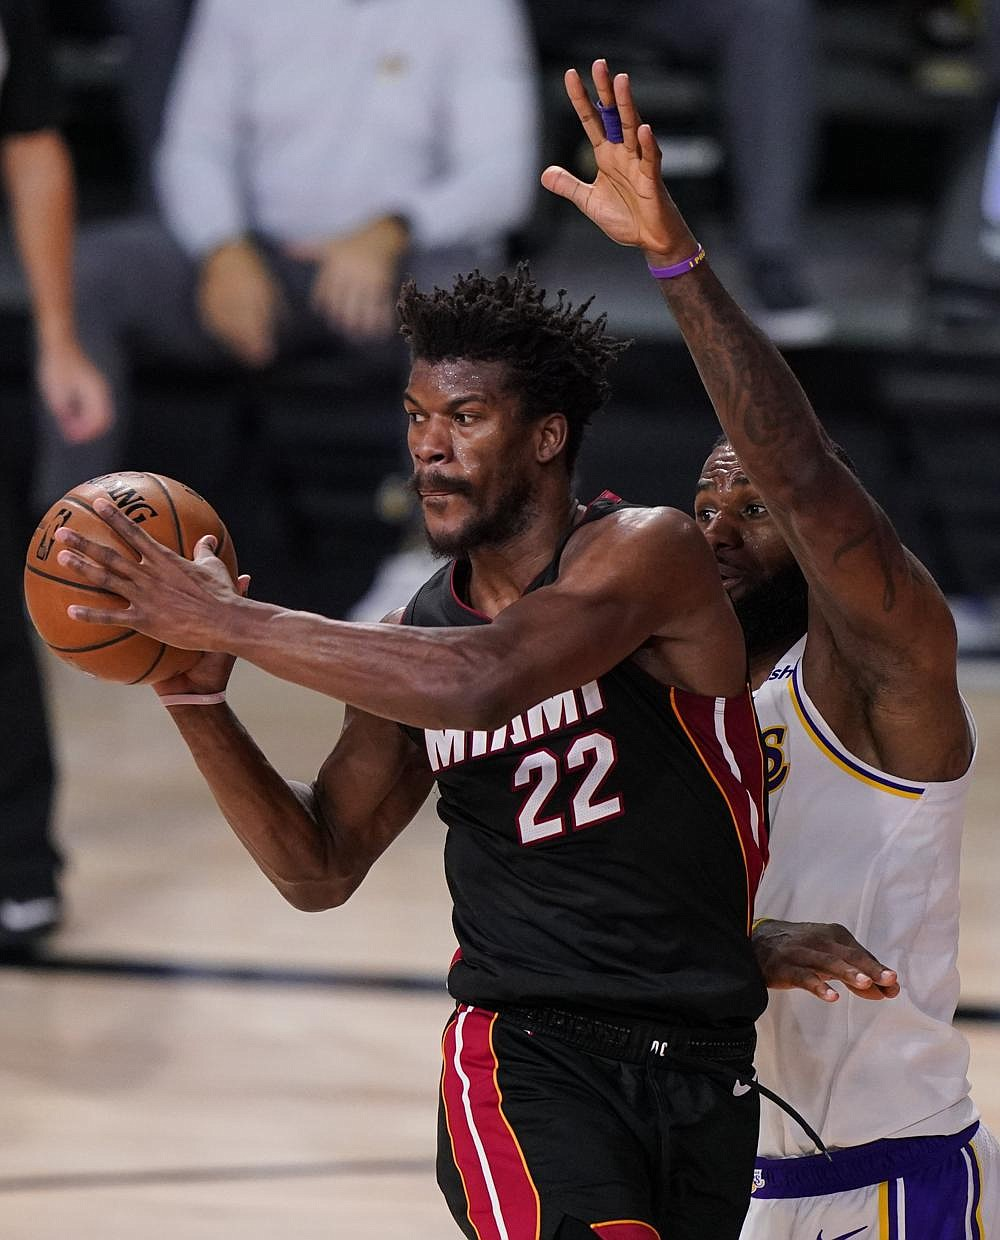 Miami Heat guard Jimmy Butler makes a pass as LeBron James of the Los Angeles Lakers defends during the second half of Game 3 of the NBA Finals on Sunday in Lake Buena Vista, Fla. Butler had 40 points, 11 rebounds and 13 assists as the Heat beat the Lakers 115-104 to get within 2-1 in the series. (AP/Mark J. Terrill)